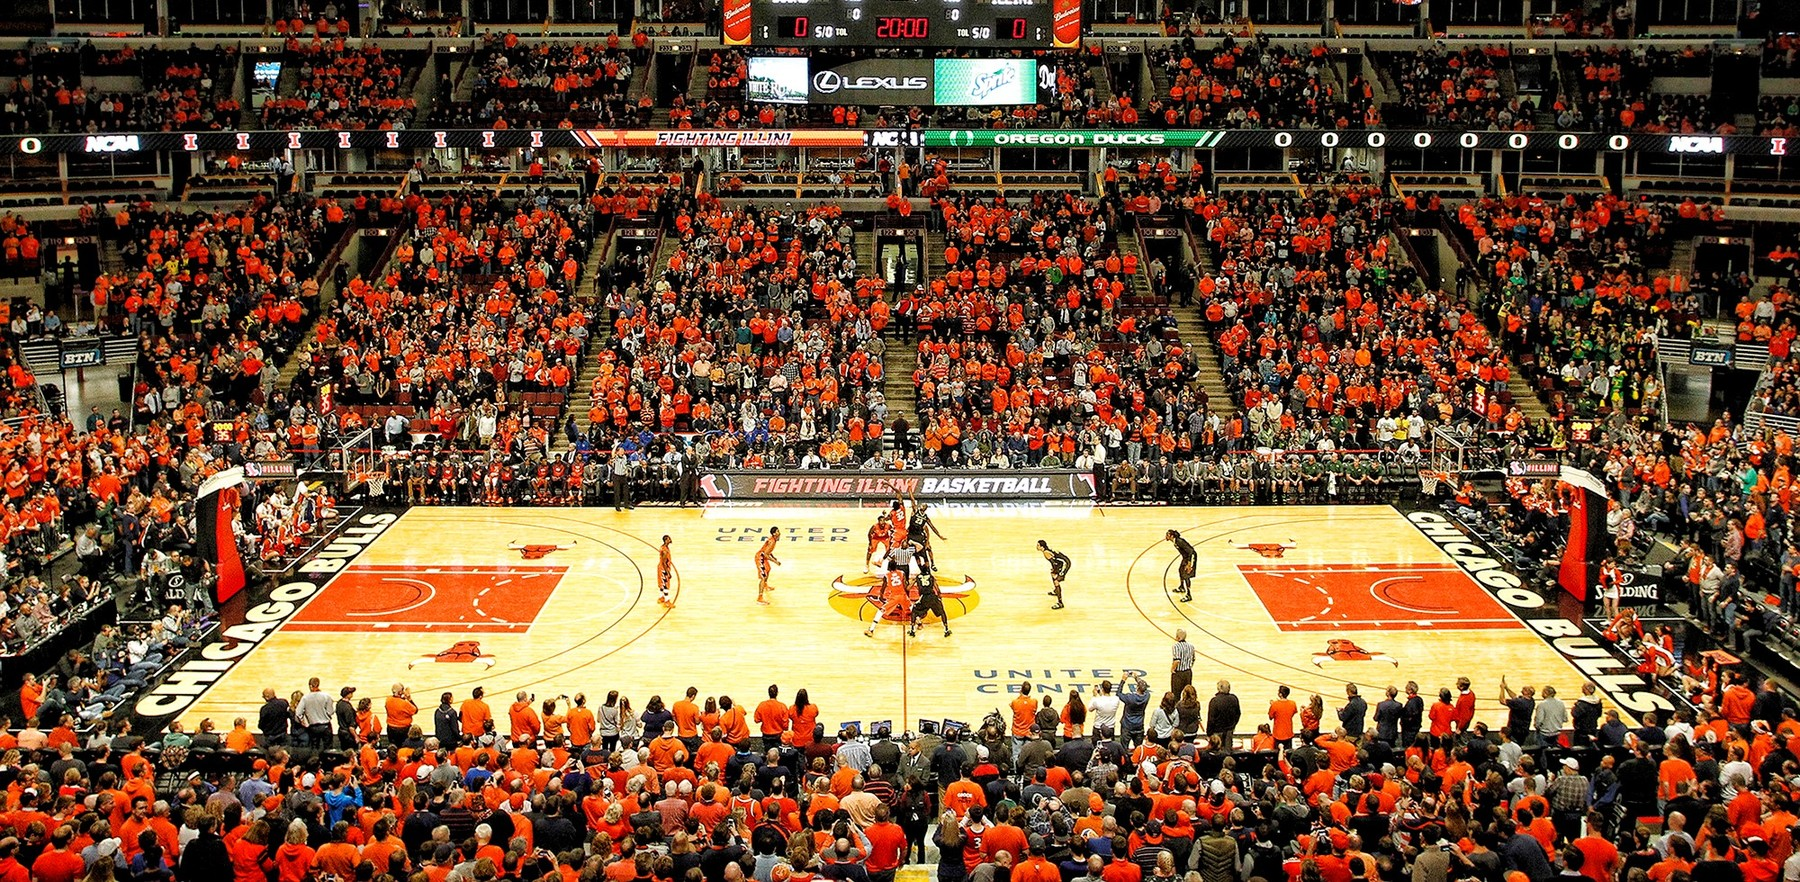 Illini men's basketball team plays on the floor of the United Center in Chicago